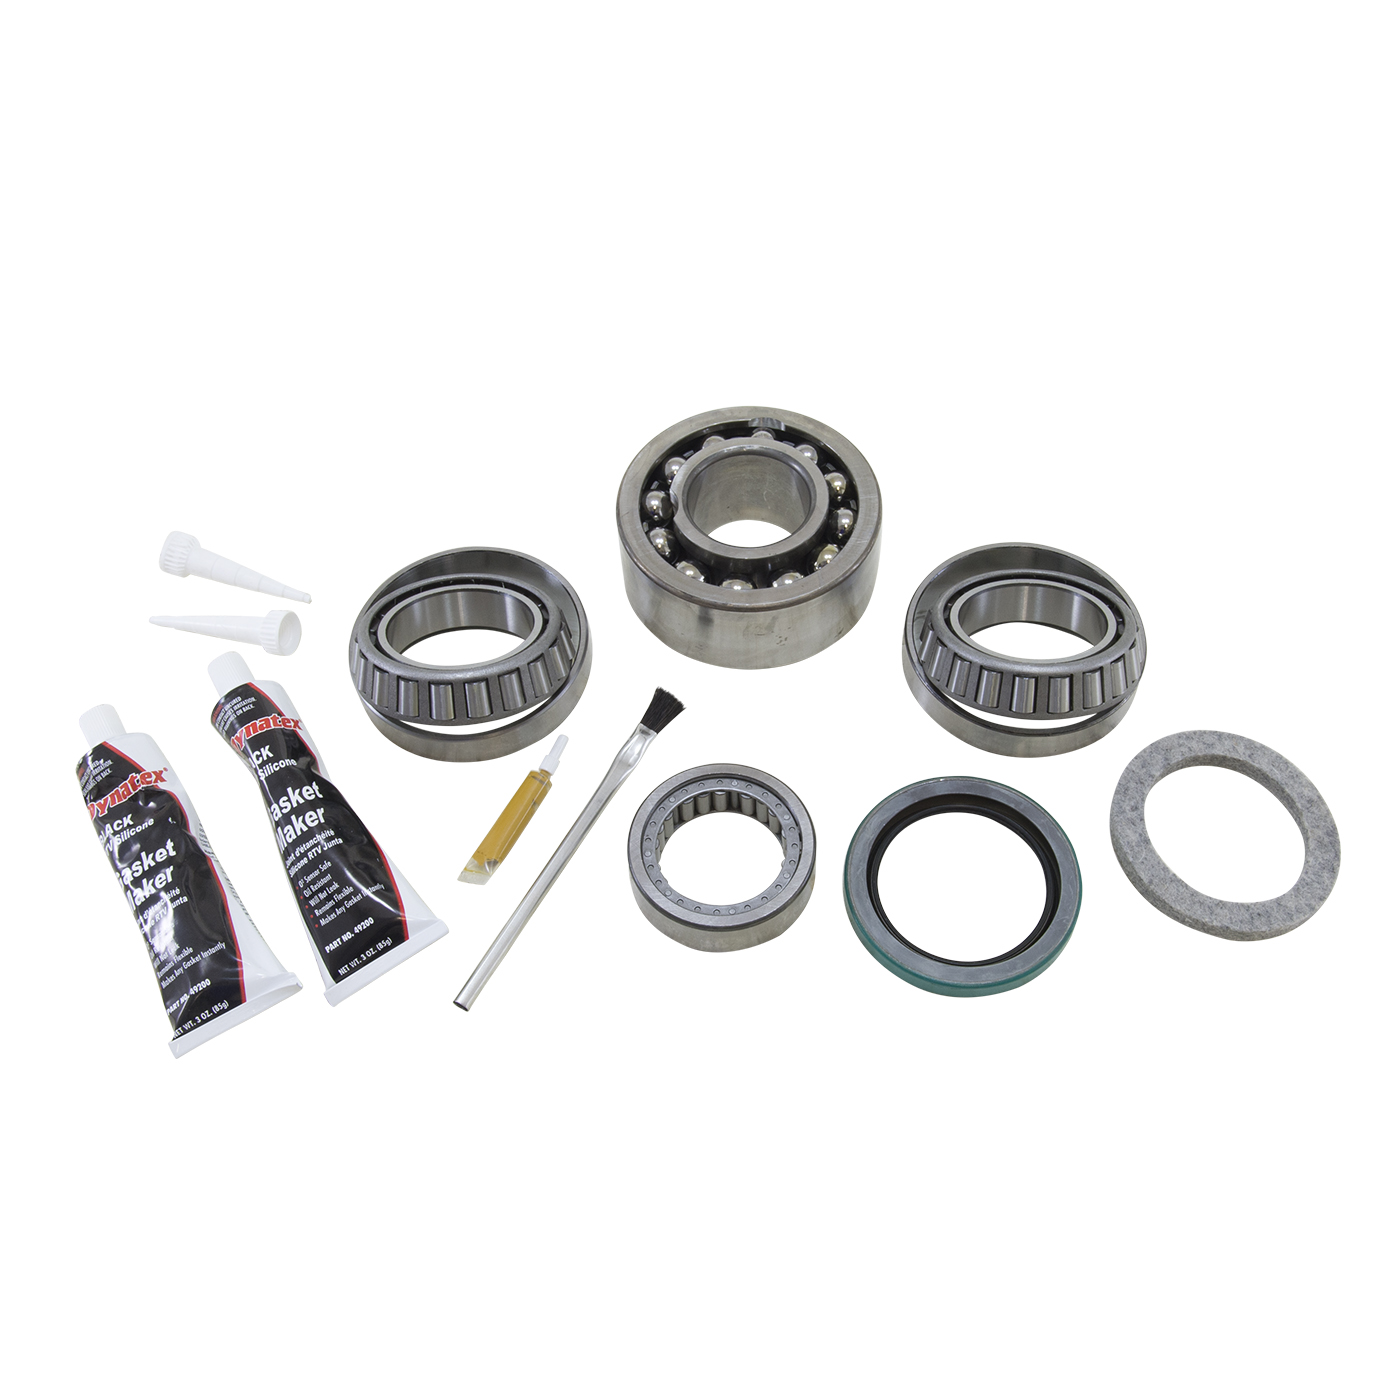 BK GMHO72-B - Yukon Bearing install kit for GM HO72 differential, with load bolt (tapered bearings)